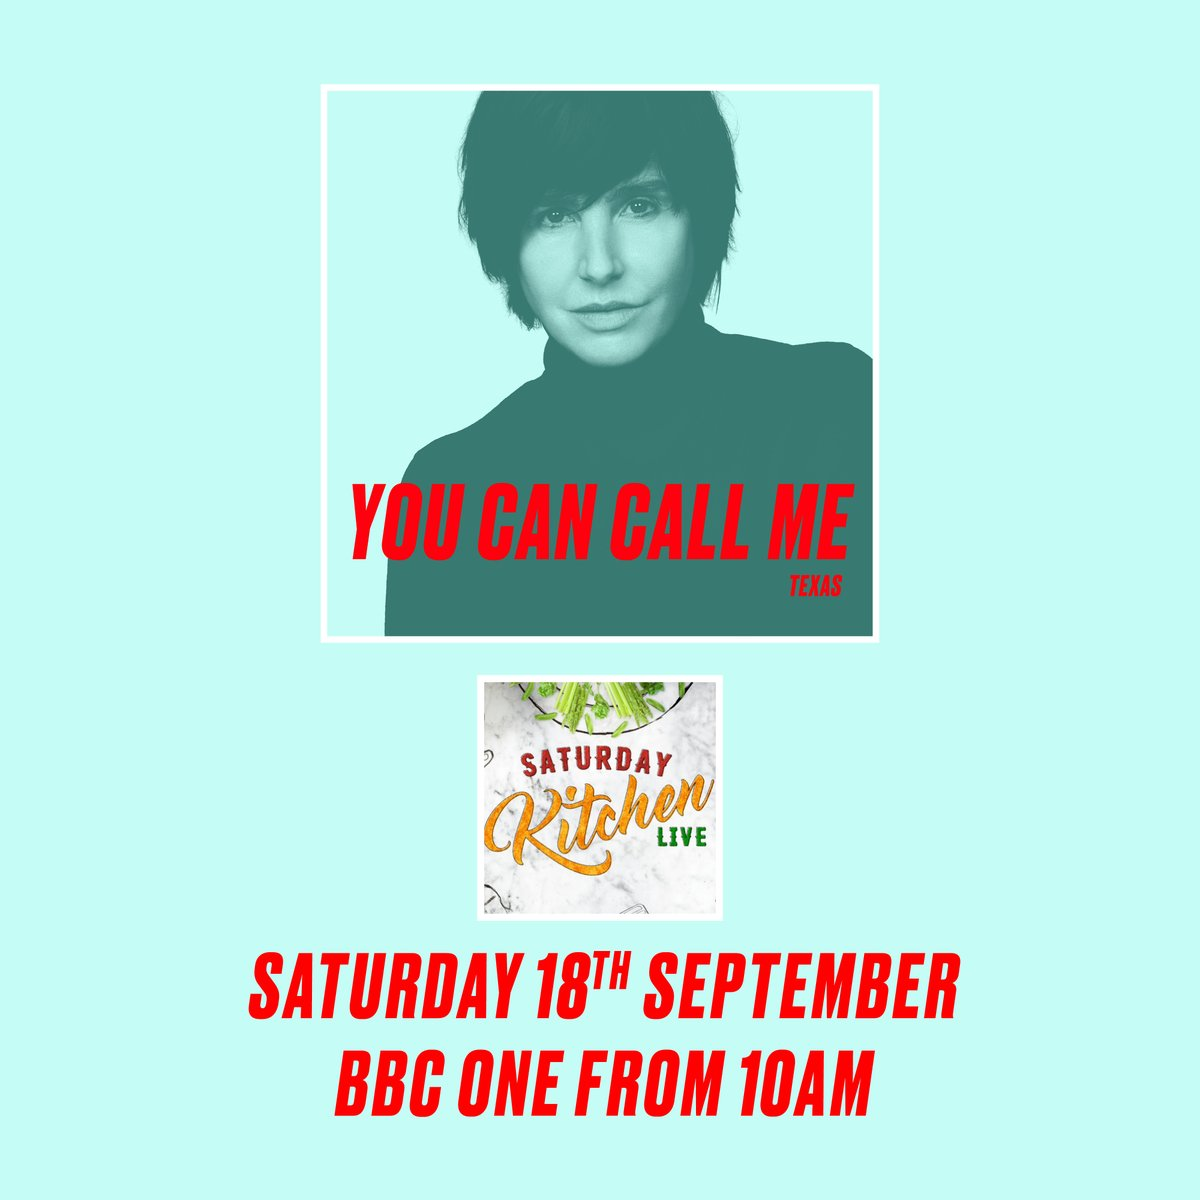 Sharleen will be the special guest on @SaturdayKitchen tomorrow (Saturday 18th September) 🍳 📺Tune into @BBCOne from 10am to catch her 🕙 #texastheband #saturdaykitchen